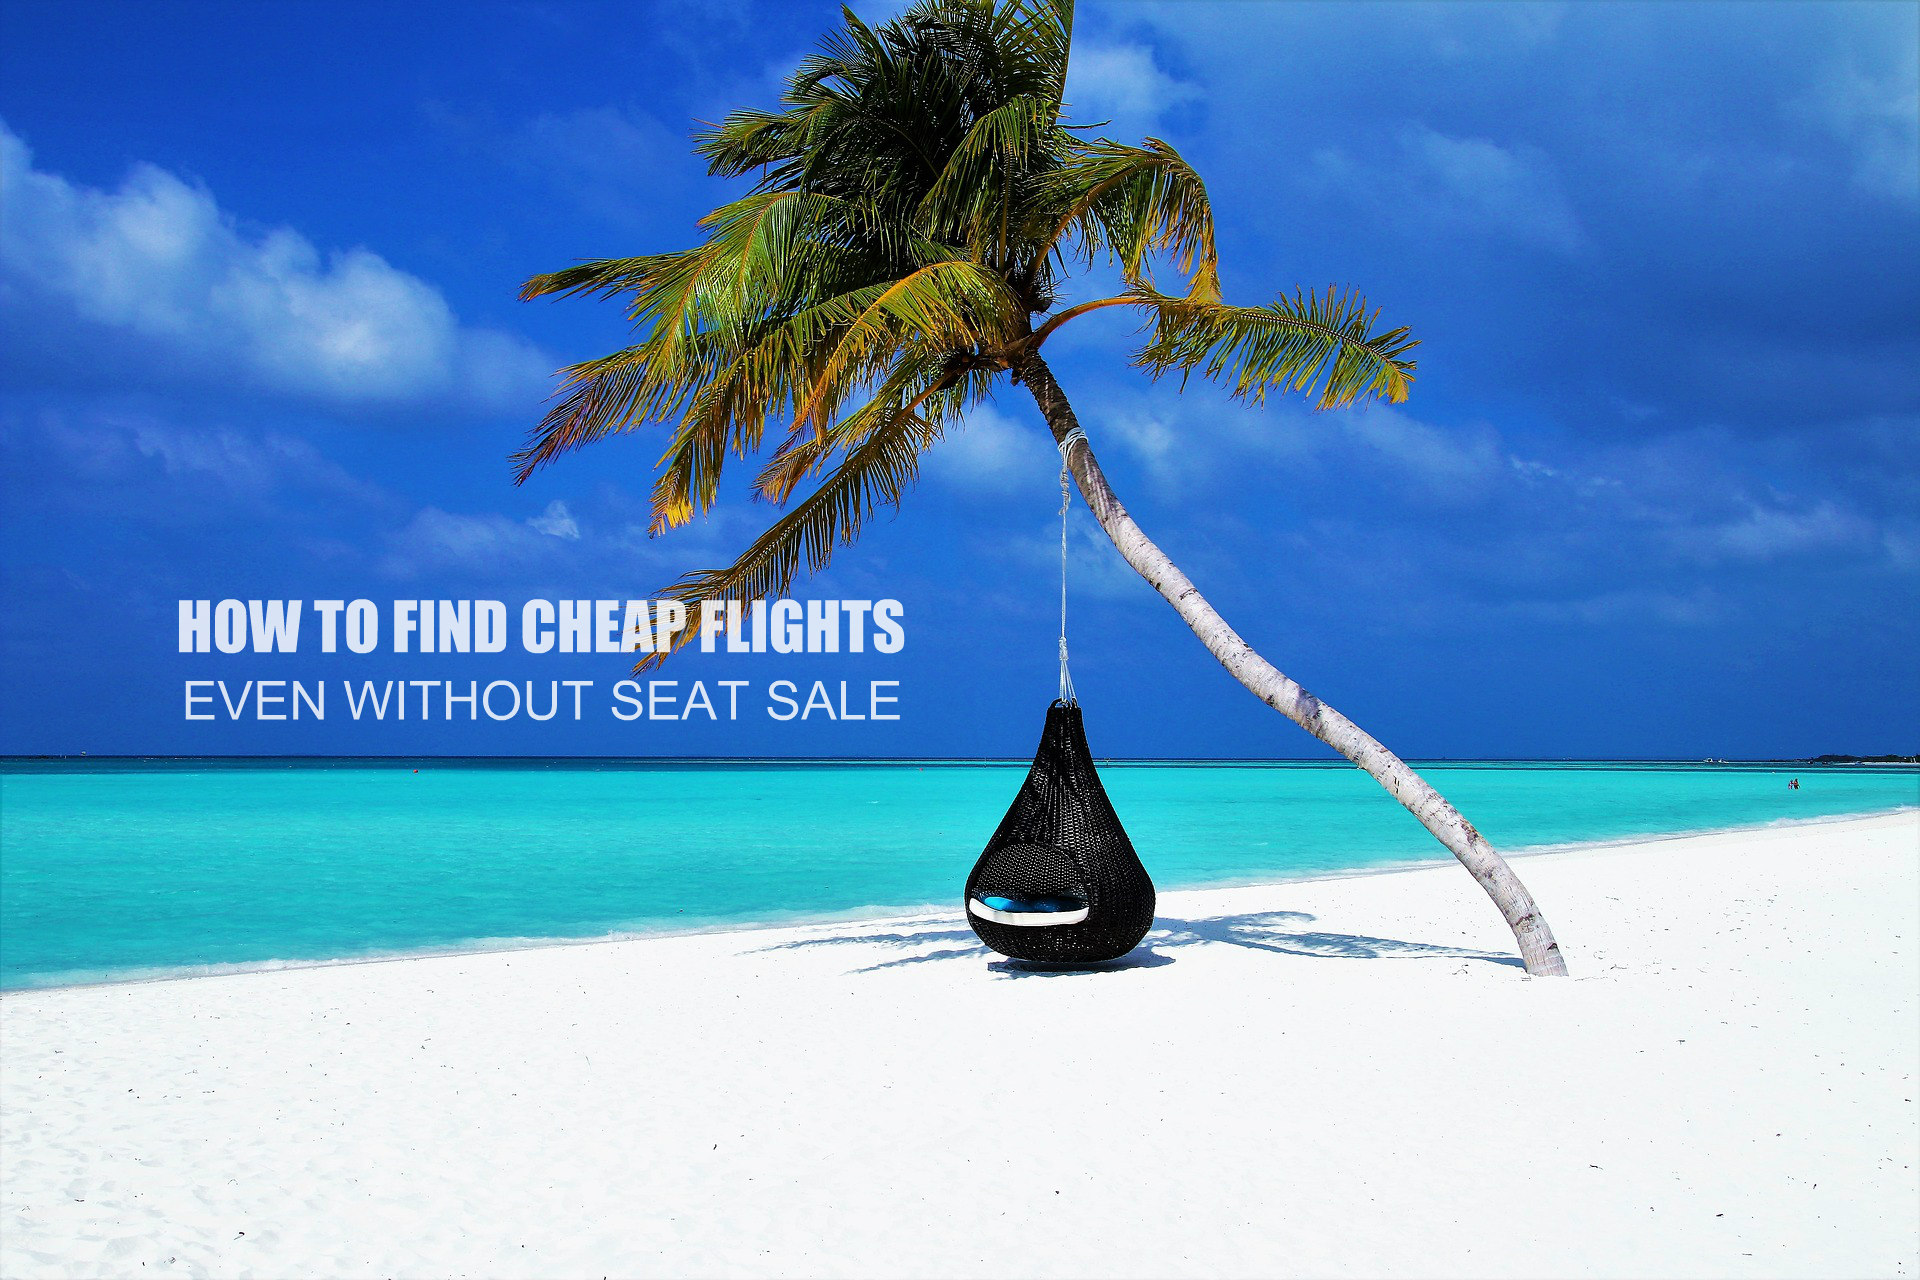 TRAVELOKA: How to Find Cheap Flights Even Without Seat Sale